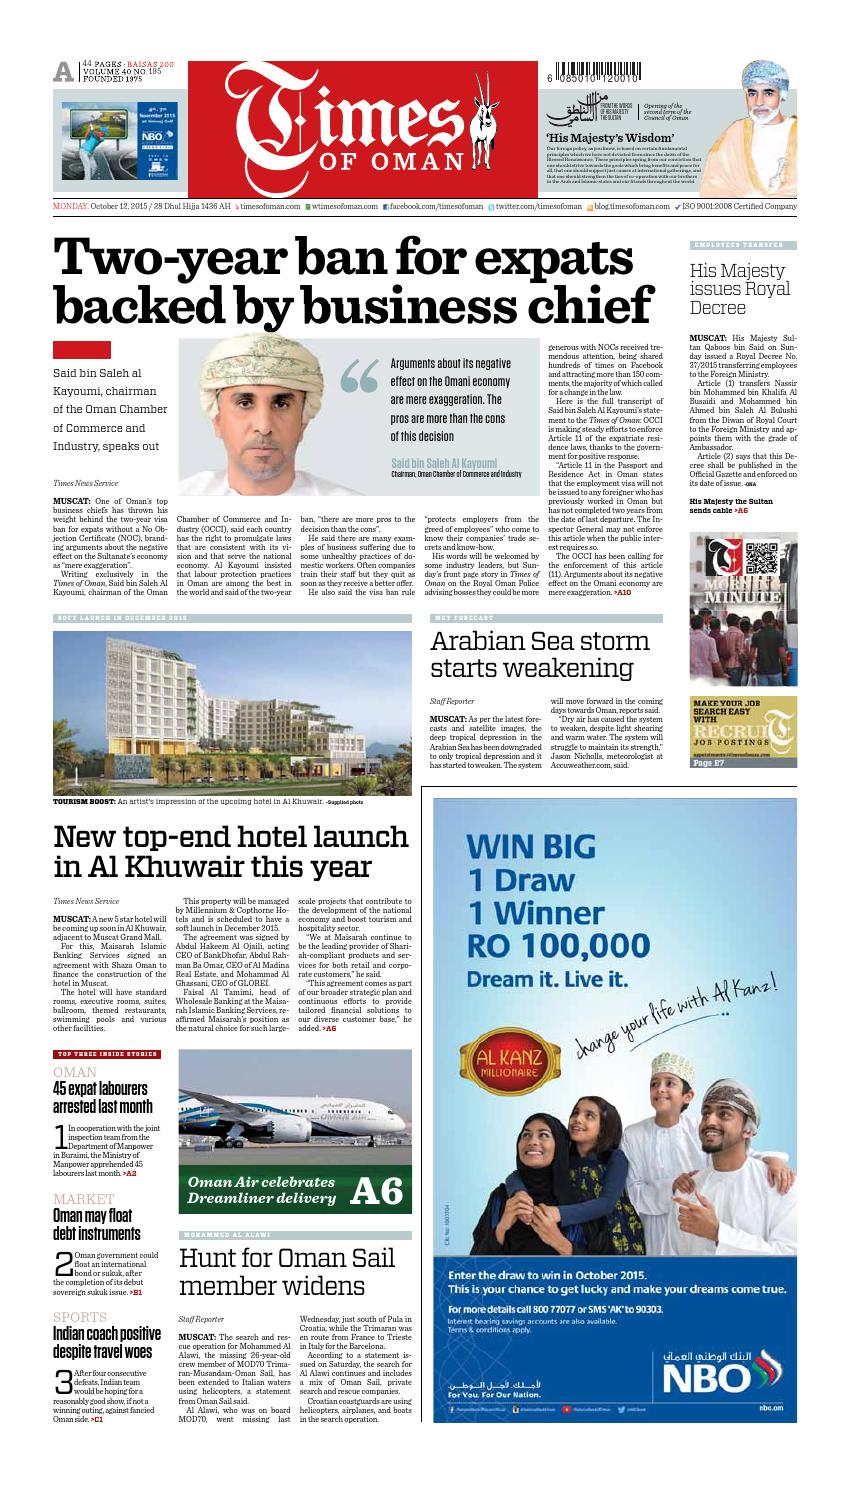 Times of Oman - October 12,2015 by Muscat Media Group - issuu